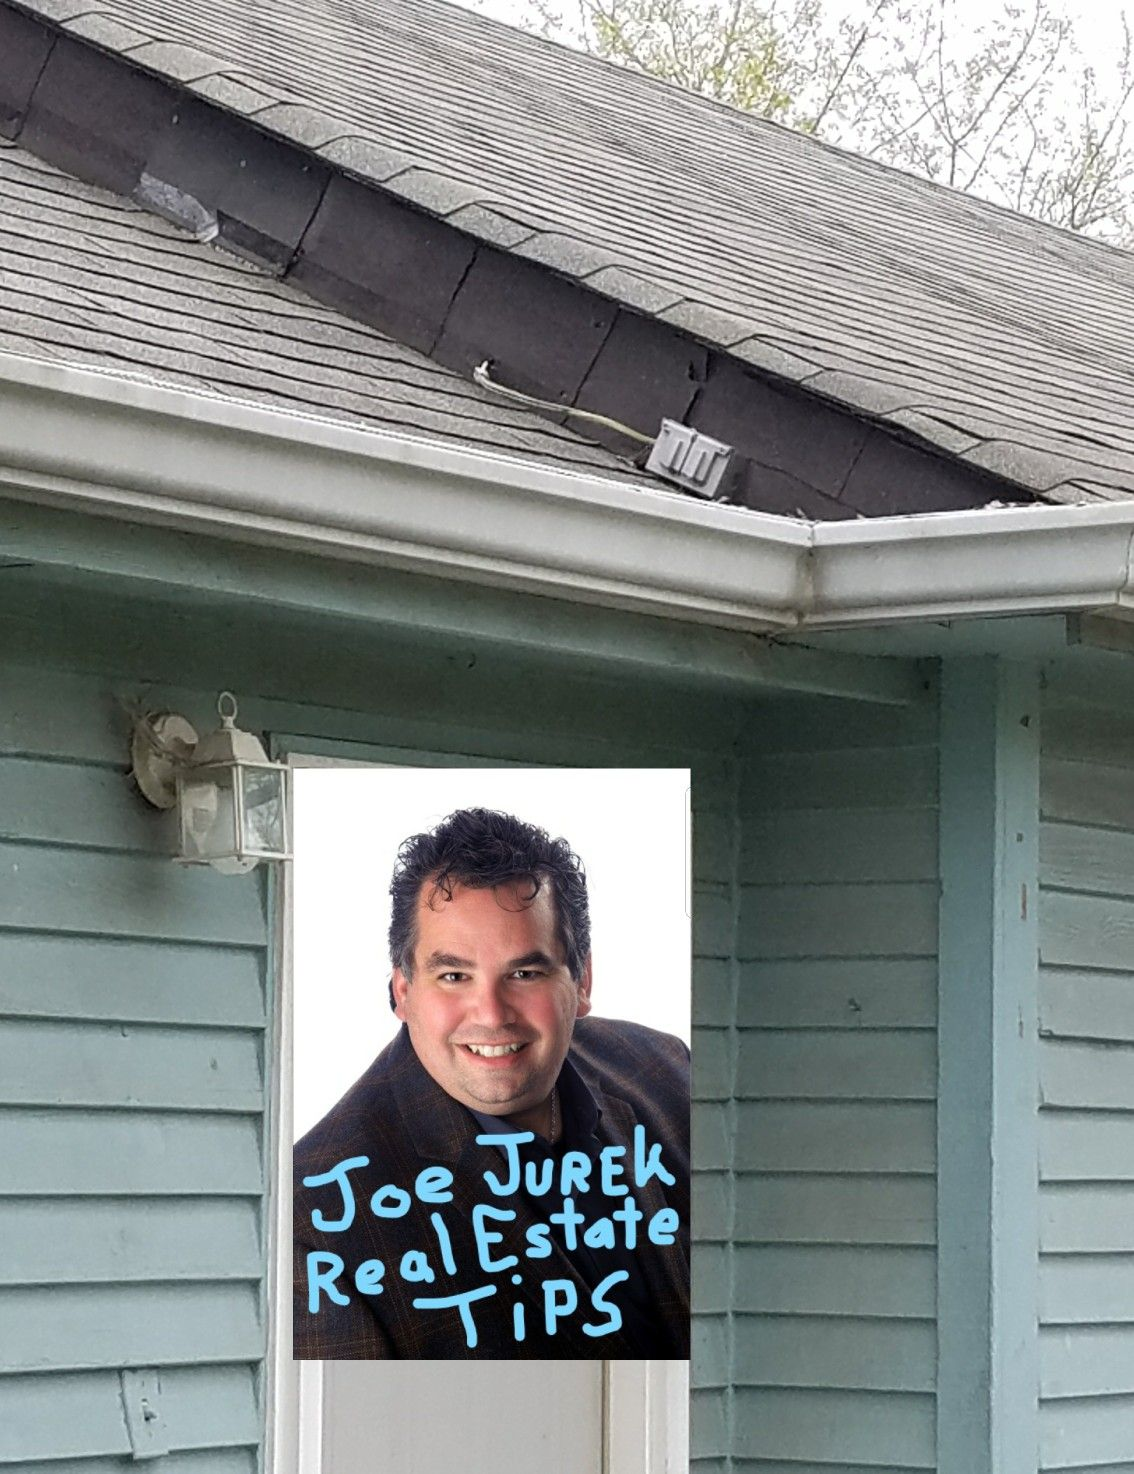 Joe Jurek Real Estate Tips Electrical Outlet On Roof In Real Estate You May Find Some Houses With Renov Real Estate Tips Real Estate Real Estate Investing